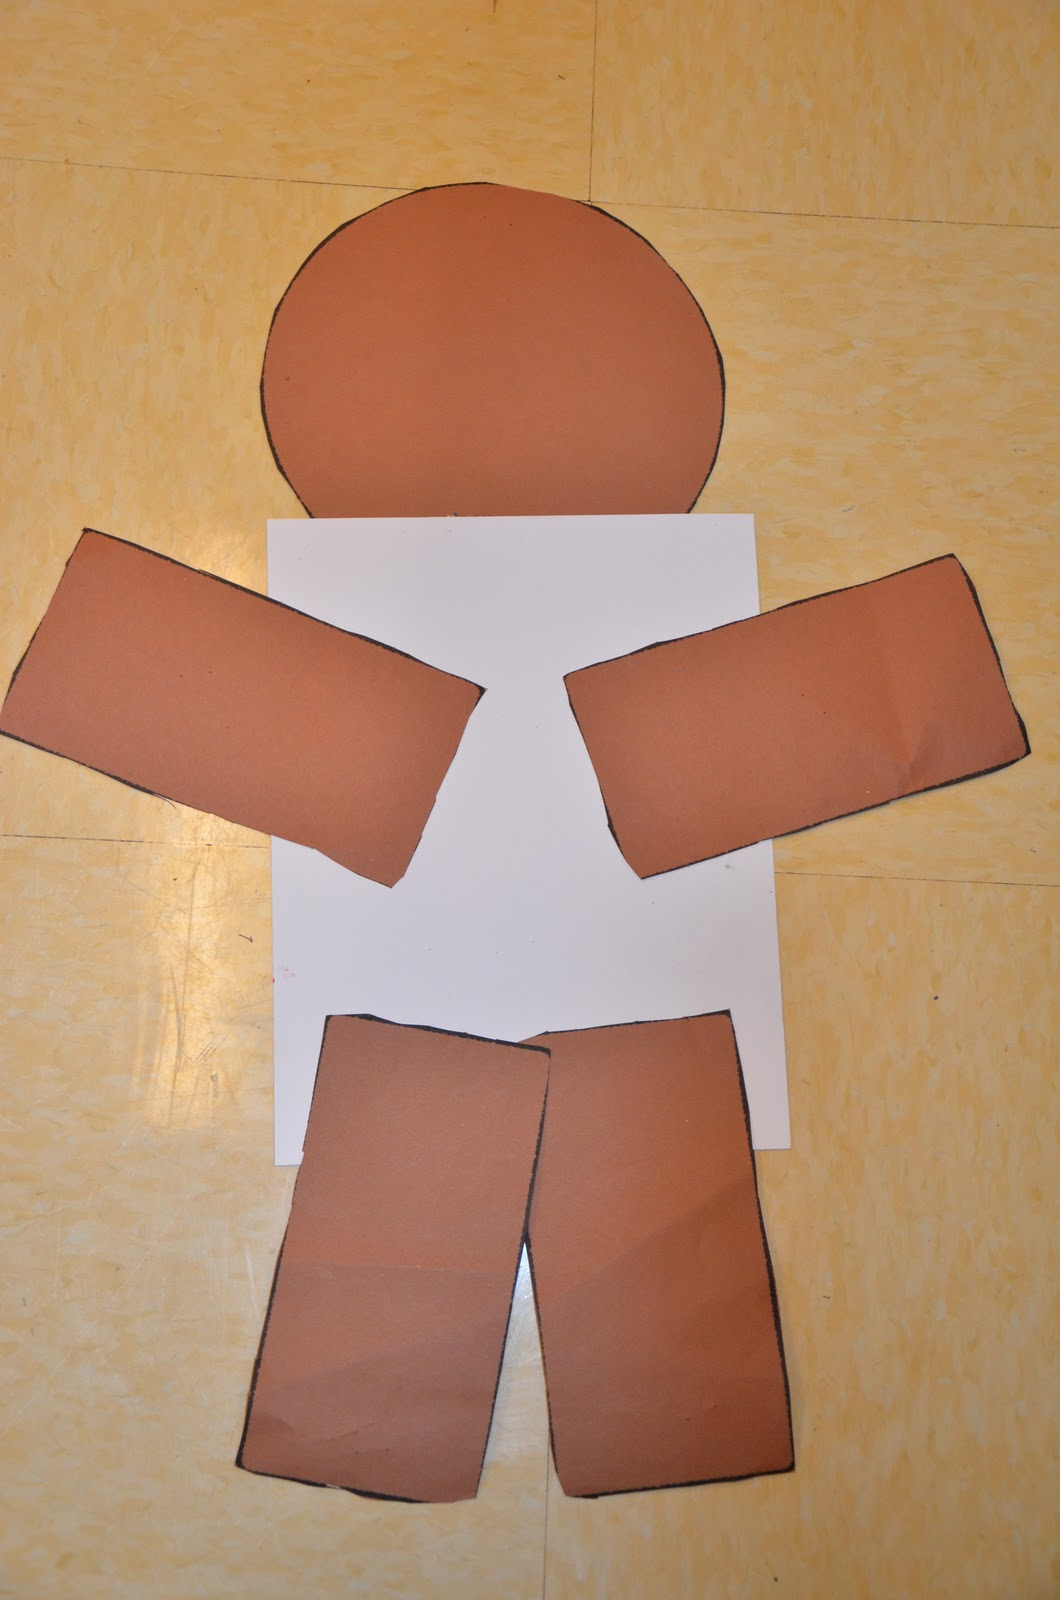 Man Mask Template Related Keywords & Suggestions - Gingerbread Man ...